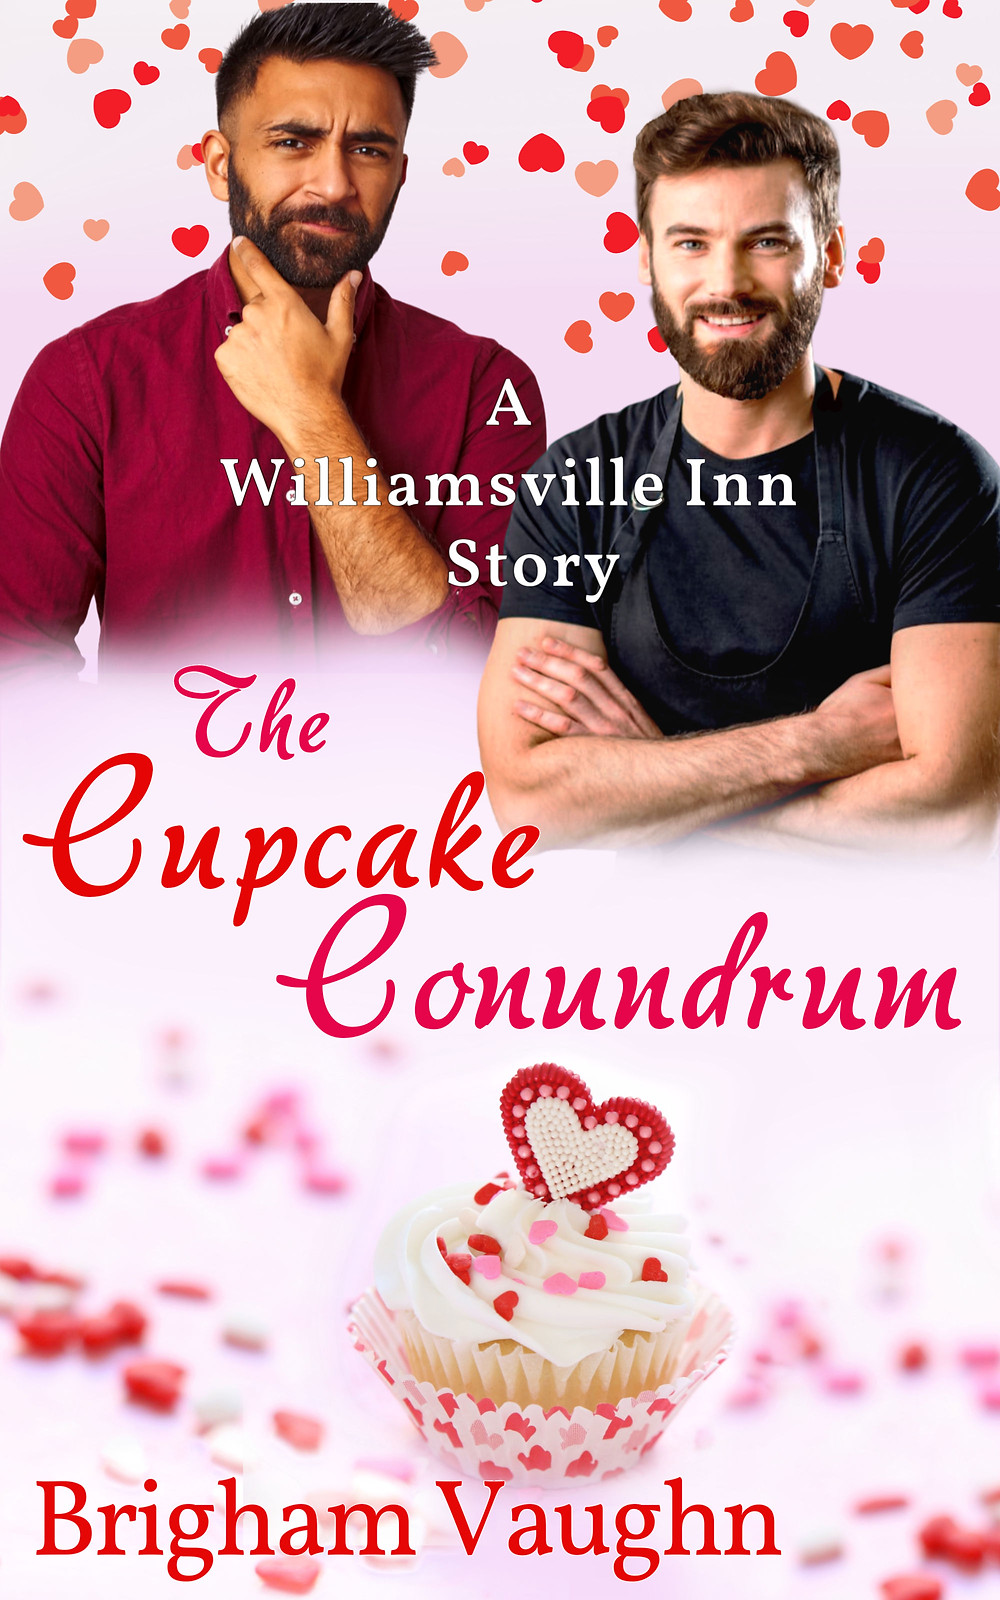 The Cupcake Conundrum Cover Final